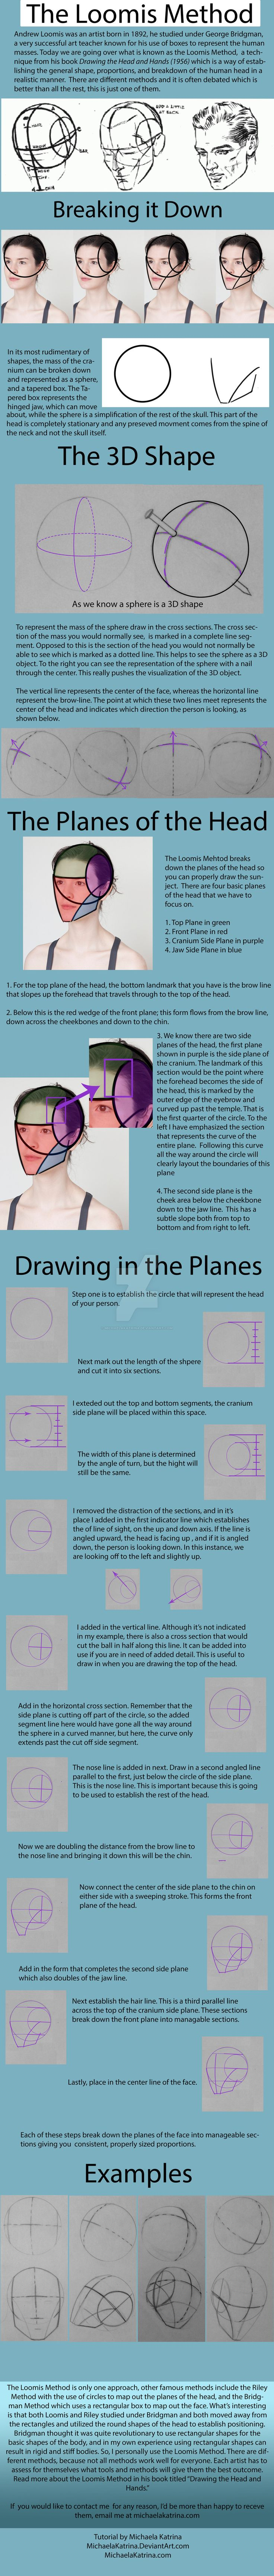 Loomis Method Tutorial by MichaelaKatrina.deviantart.com on @DeviantArt